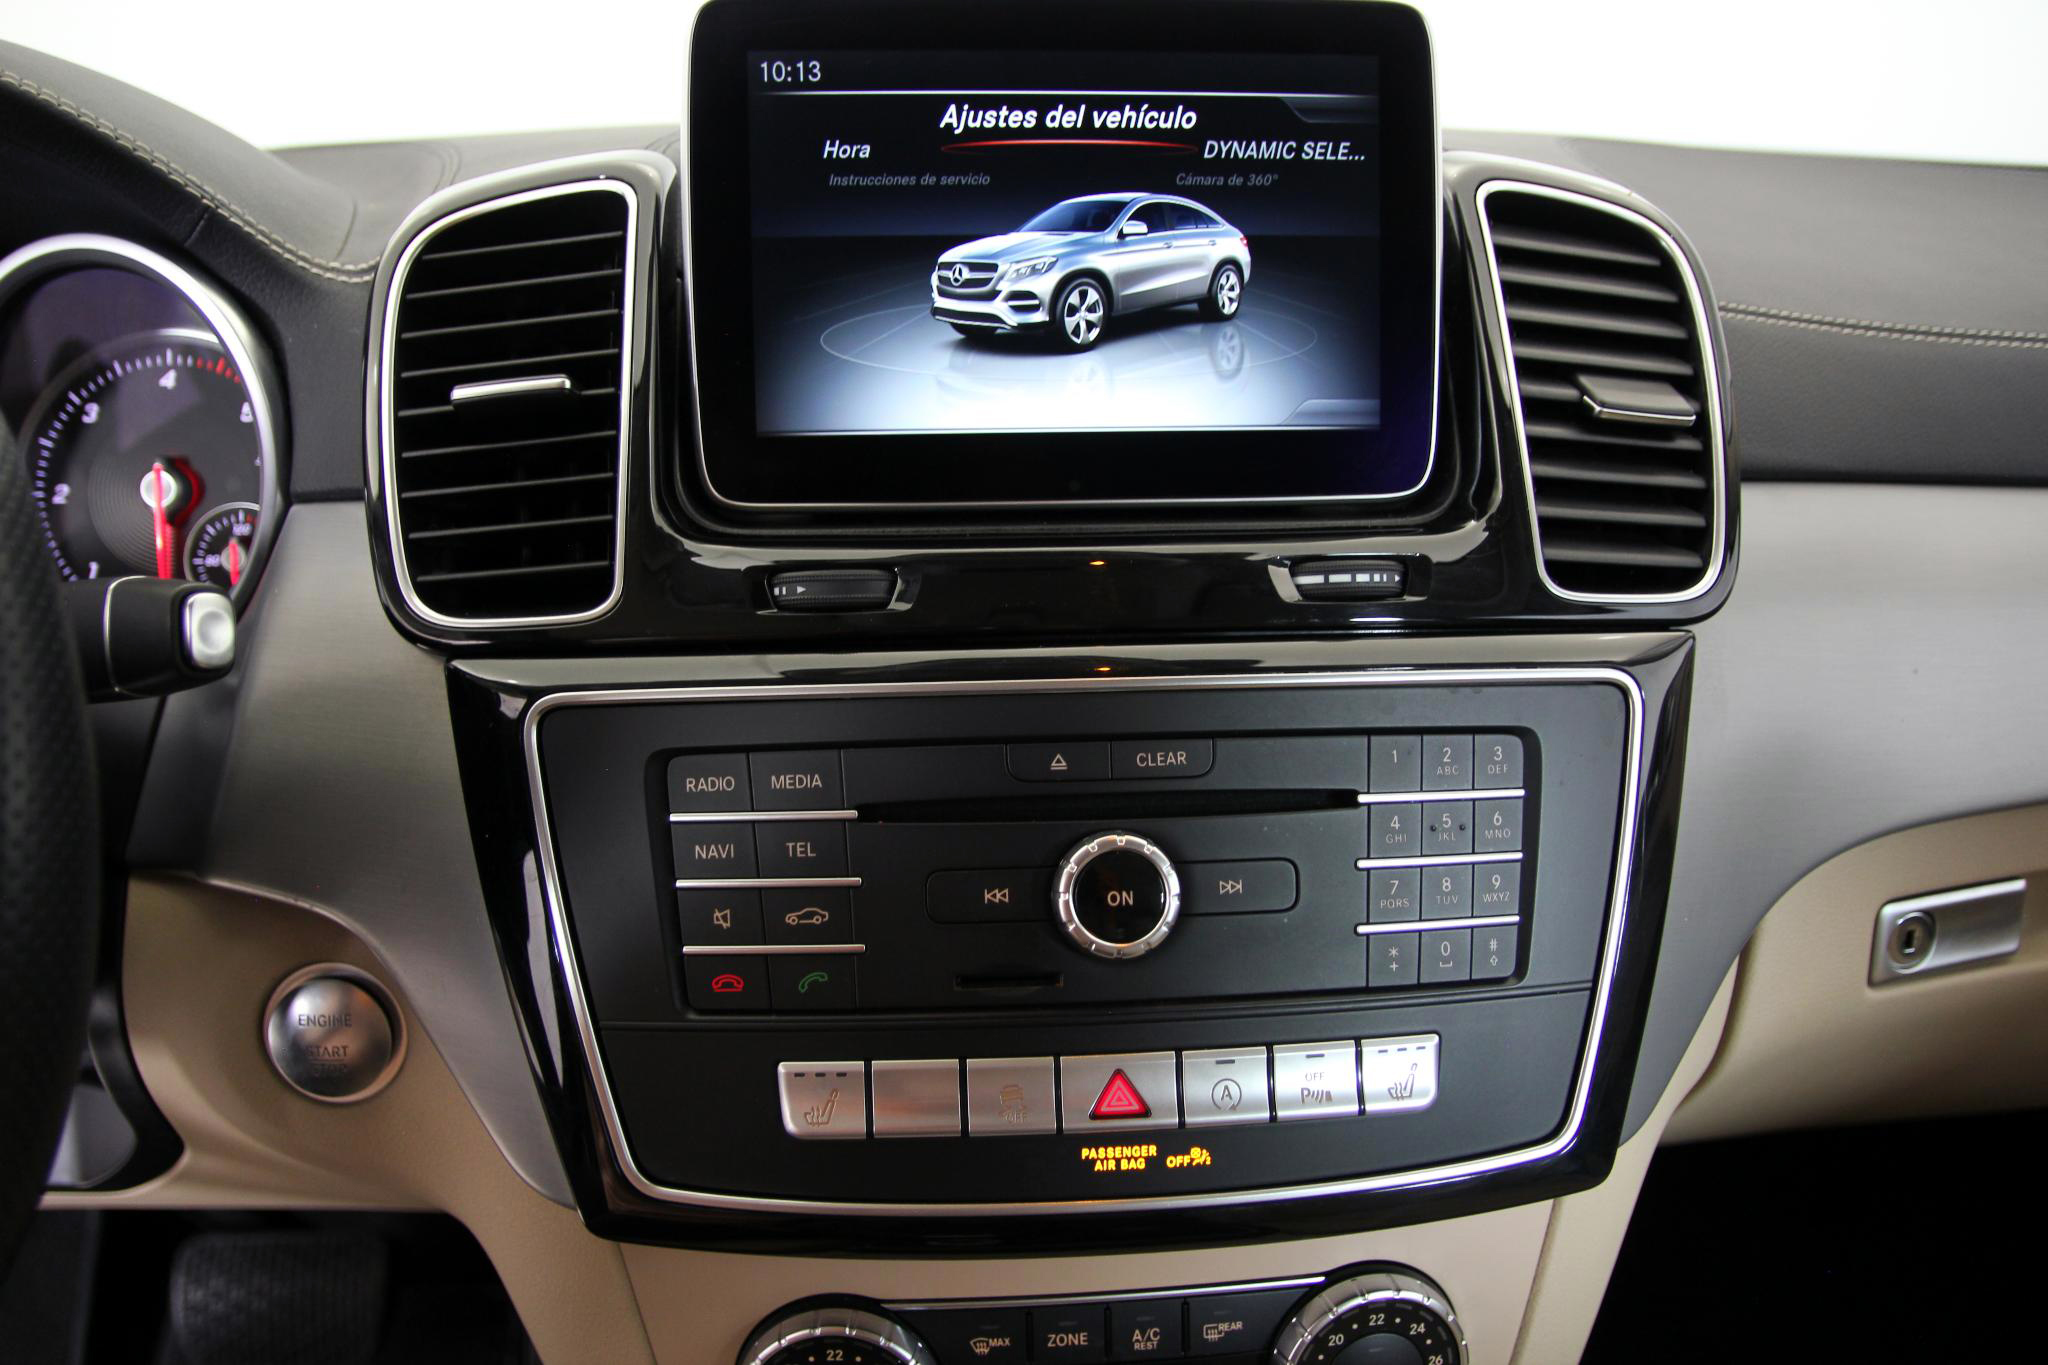 Mercedes-Benz Clase GLE GLE COUPE 350 D 4MATIC imagen 30